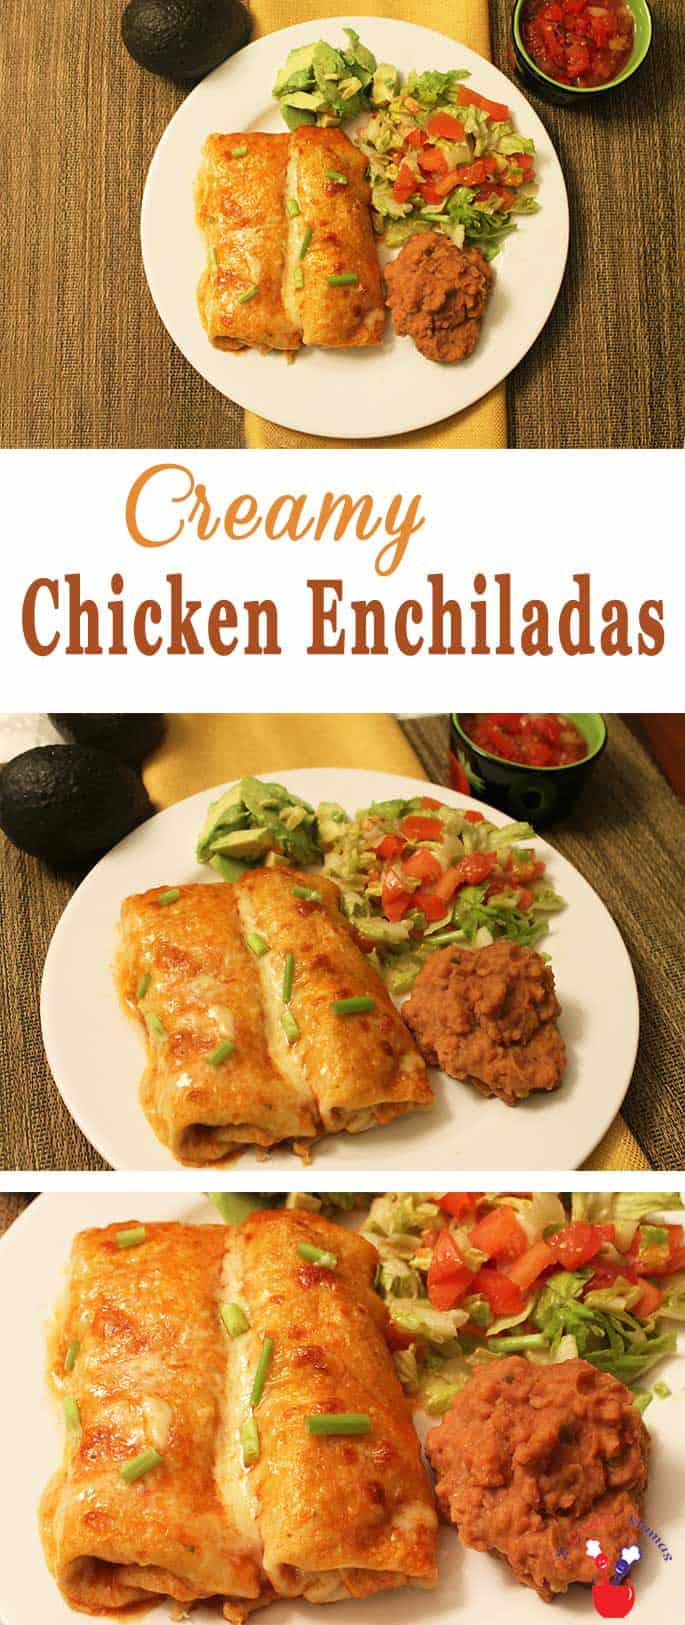 When you\'re in the mood for Mexican these Creamy Chicken Enchiladas will hit the spot. Deliciously creamy, easy to make & perfect for busy weeknights. #enchiladas #chicken #dinner #recipe #quickandeasy